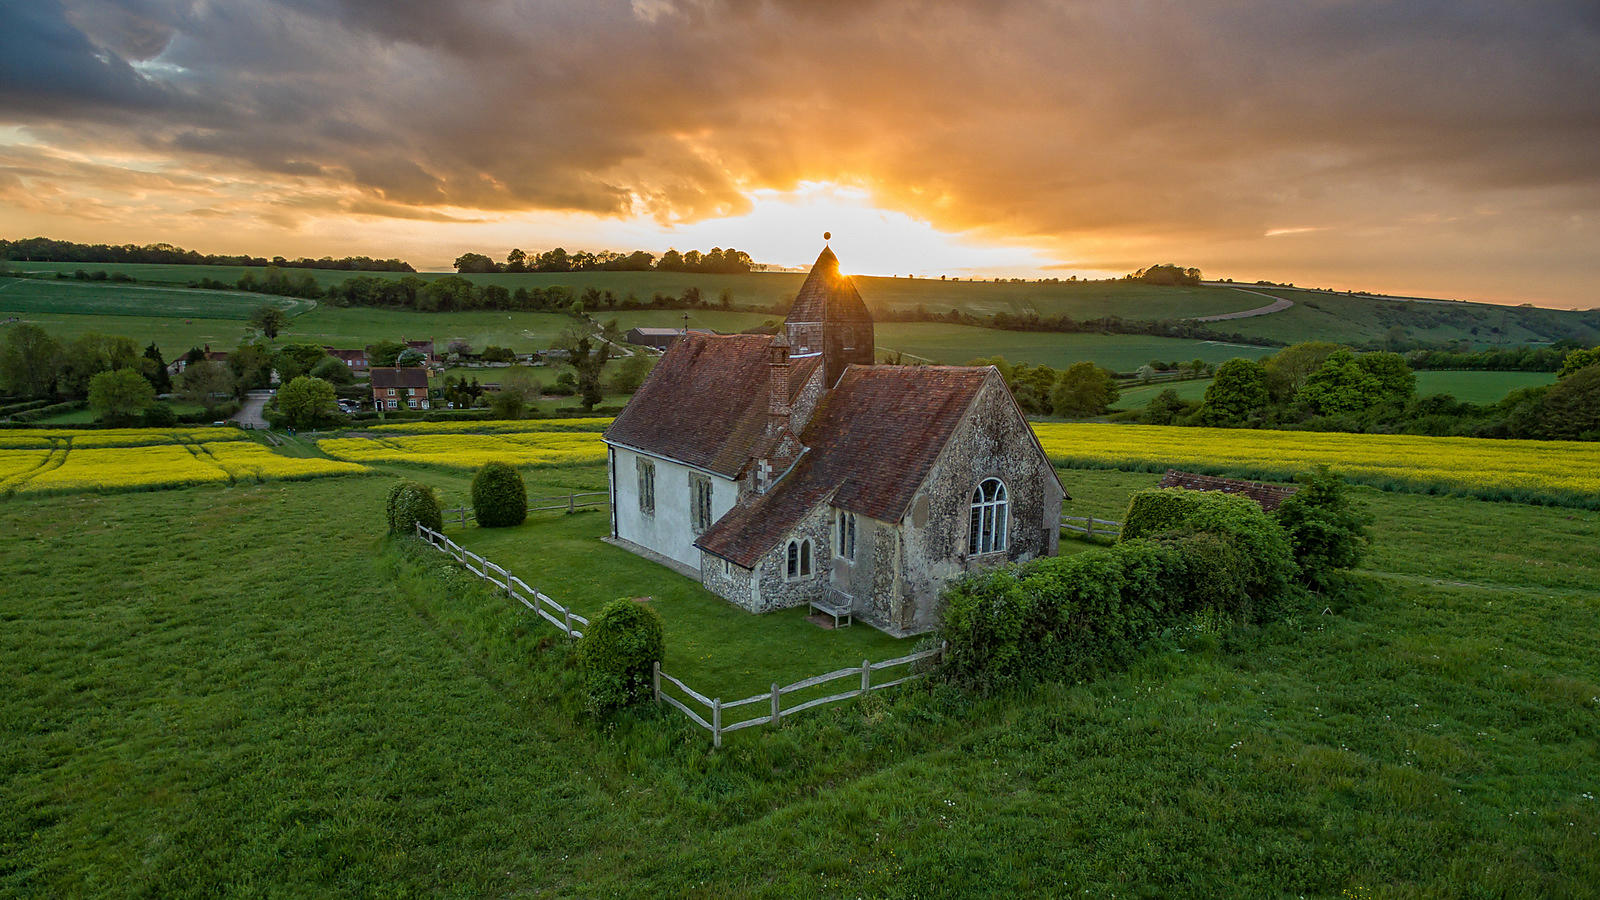 Aerial View of St Hubert's Church in Idsworth, Hampshire